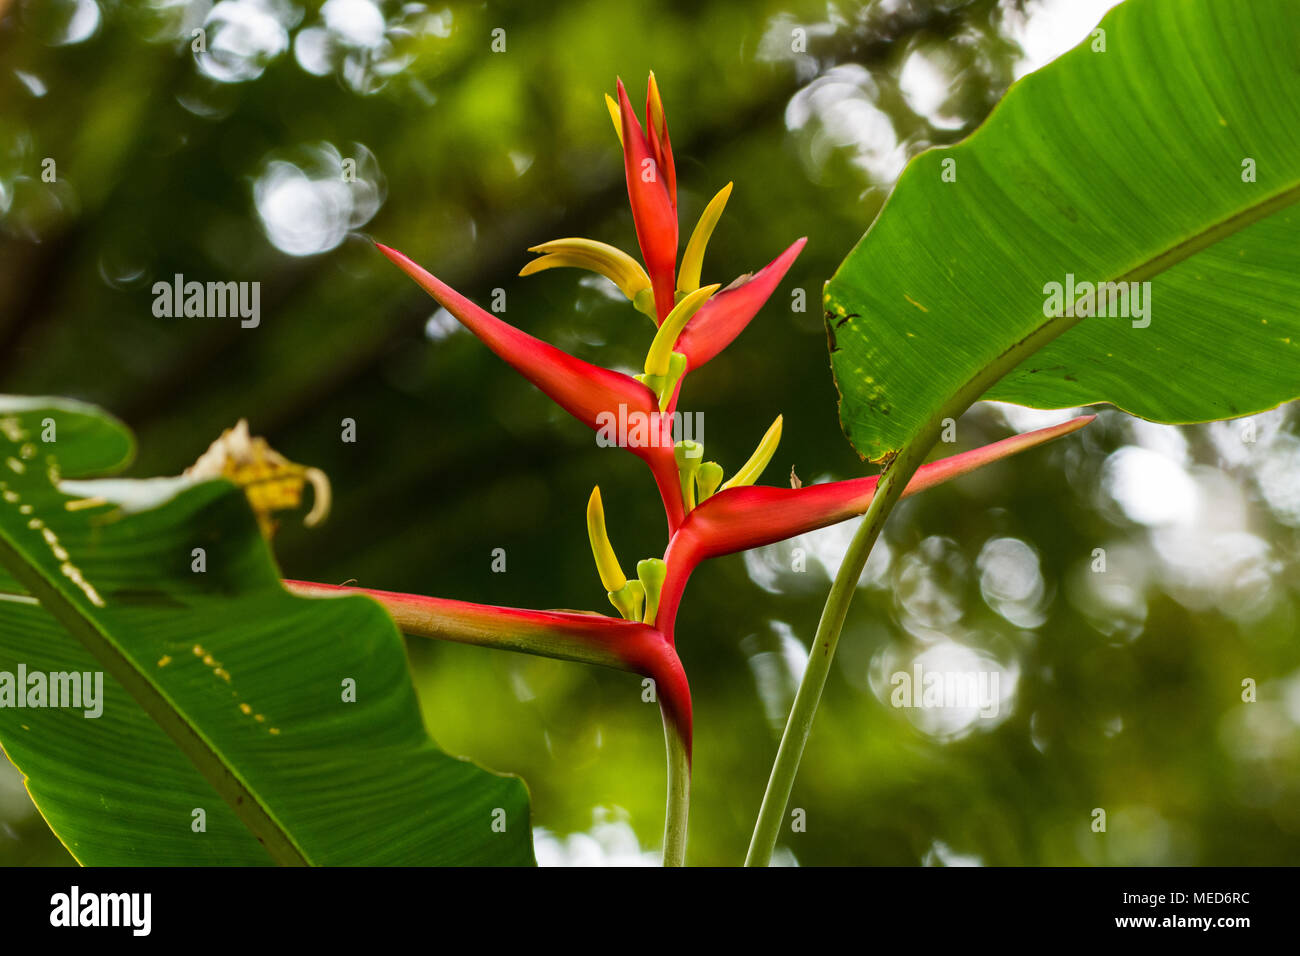 Flowers of Santa Marta Heliconia (Heliconia mincana), native only to the mountains of Sierra Nevada, Northern Colombia, South America. - Stock Image